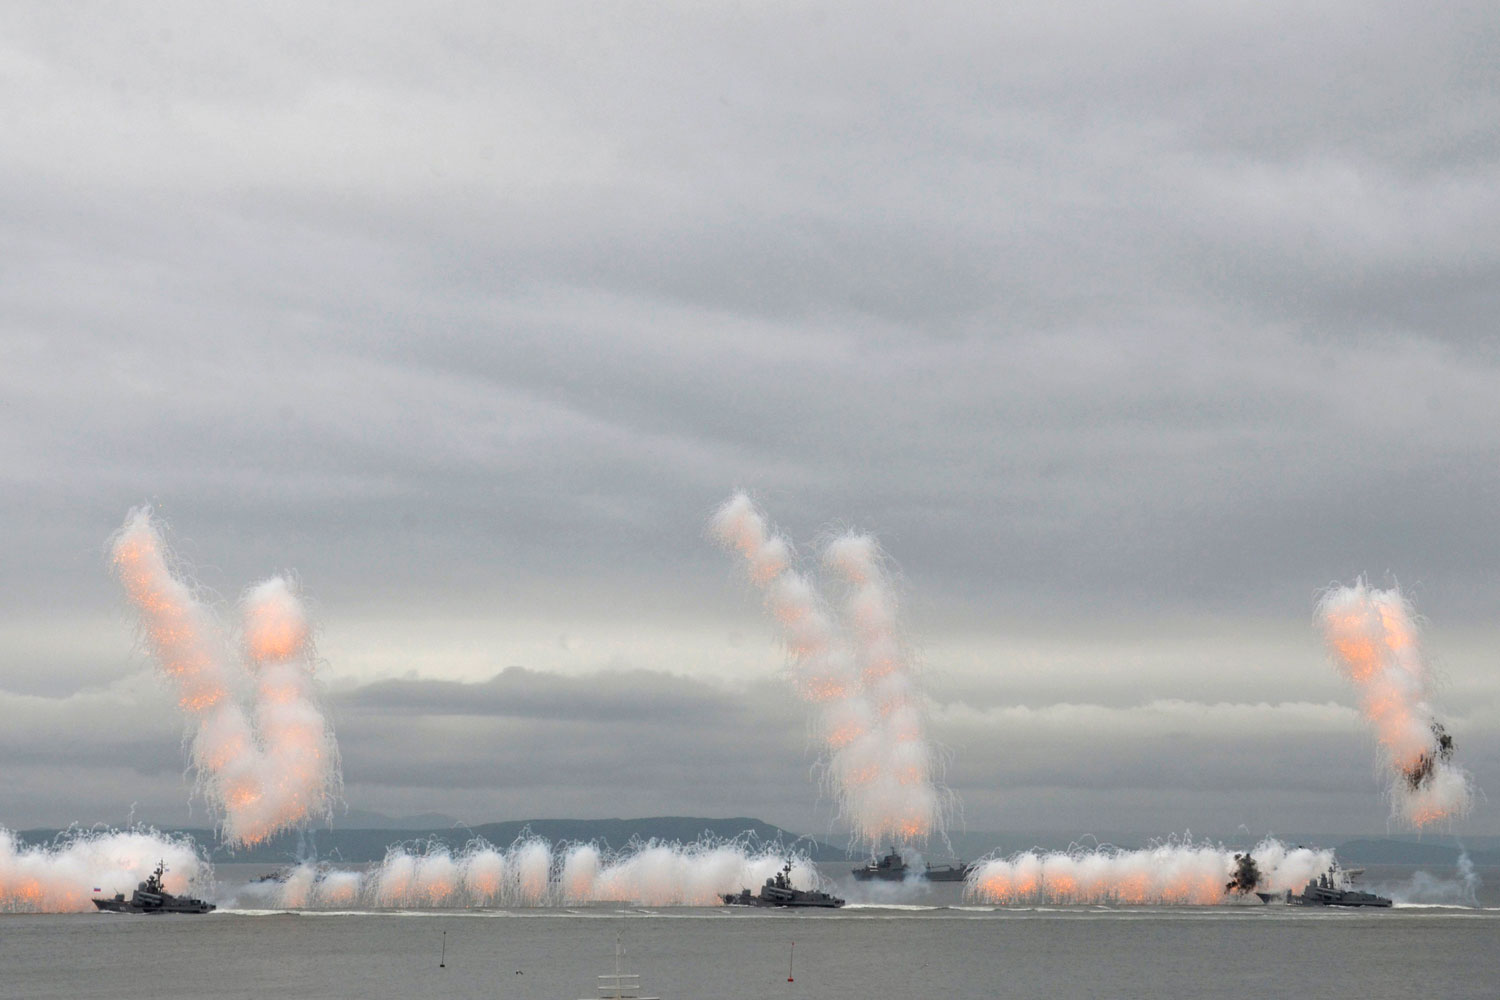 July 31, 2011. Russian warships fire during a naval parade in the far eastern port of Vladivostok.